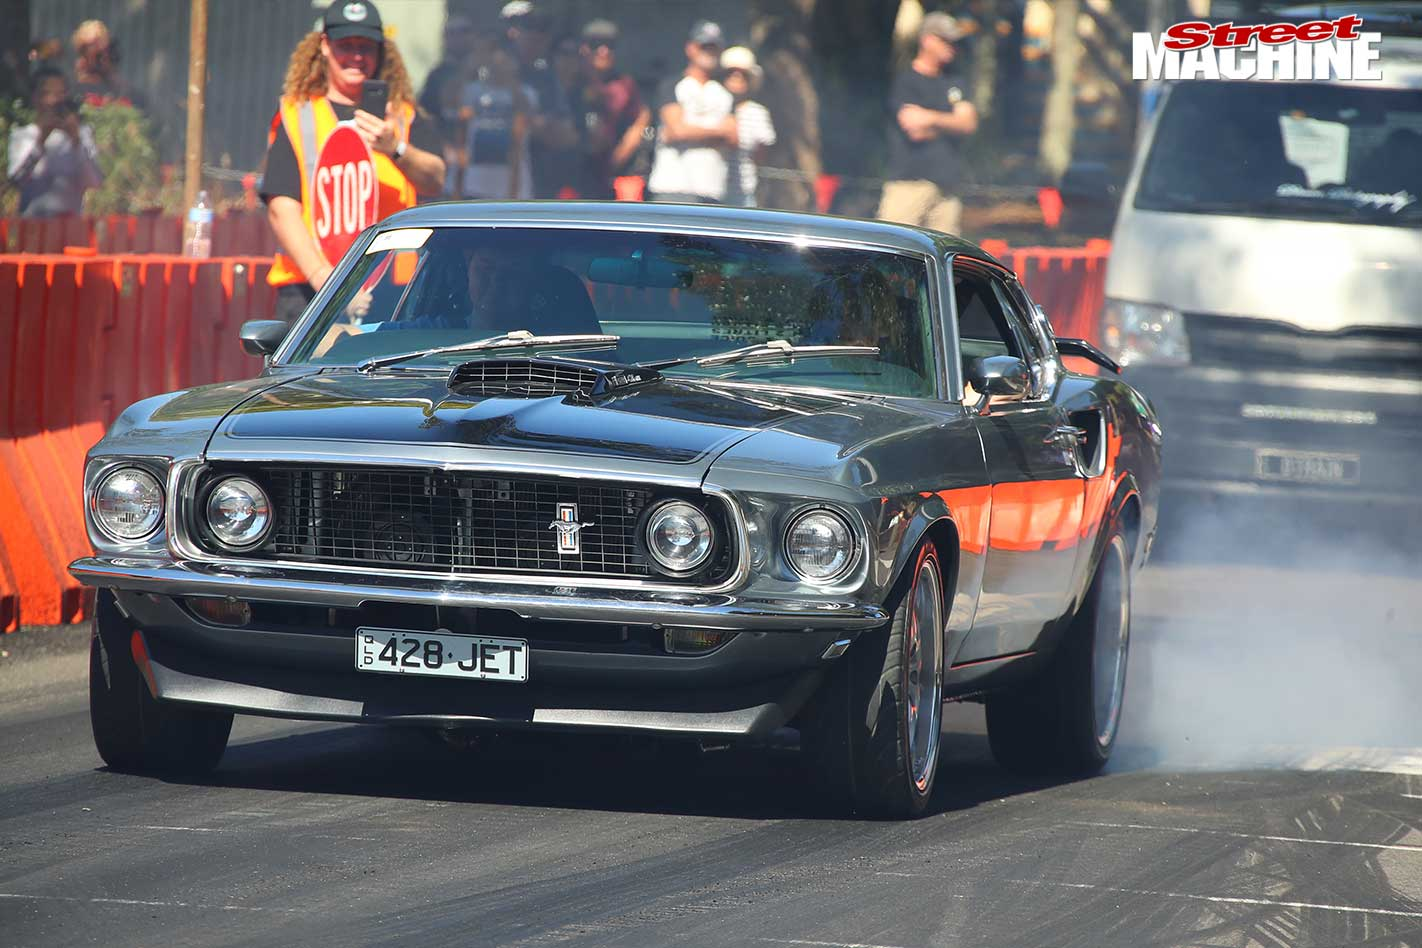 Ford Mustang 428JET